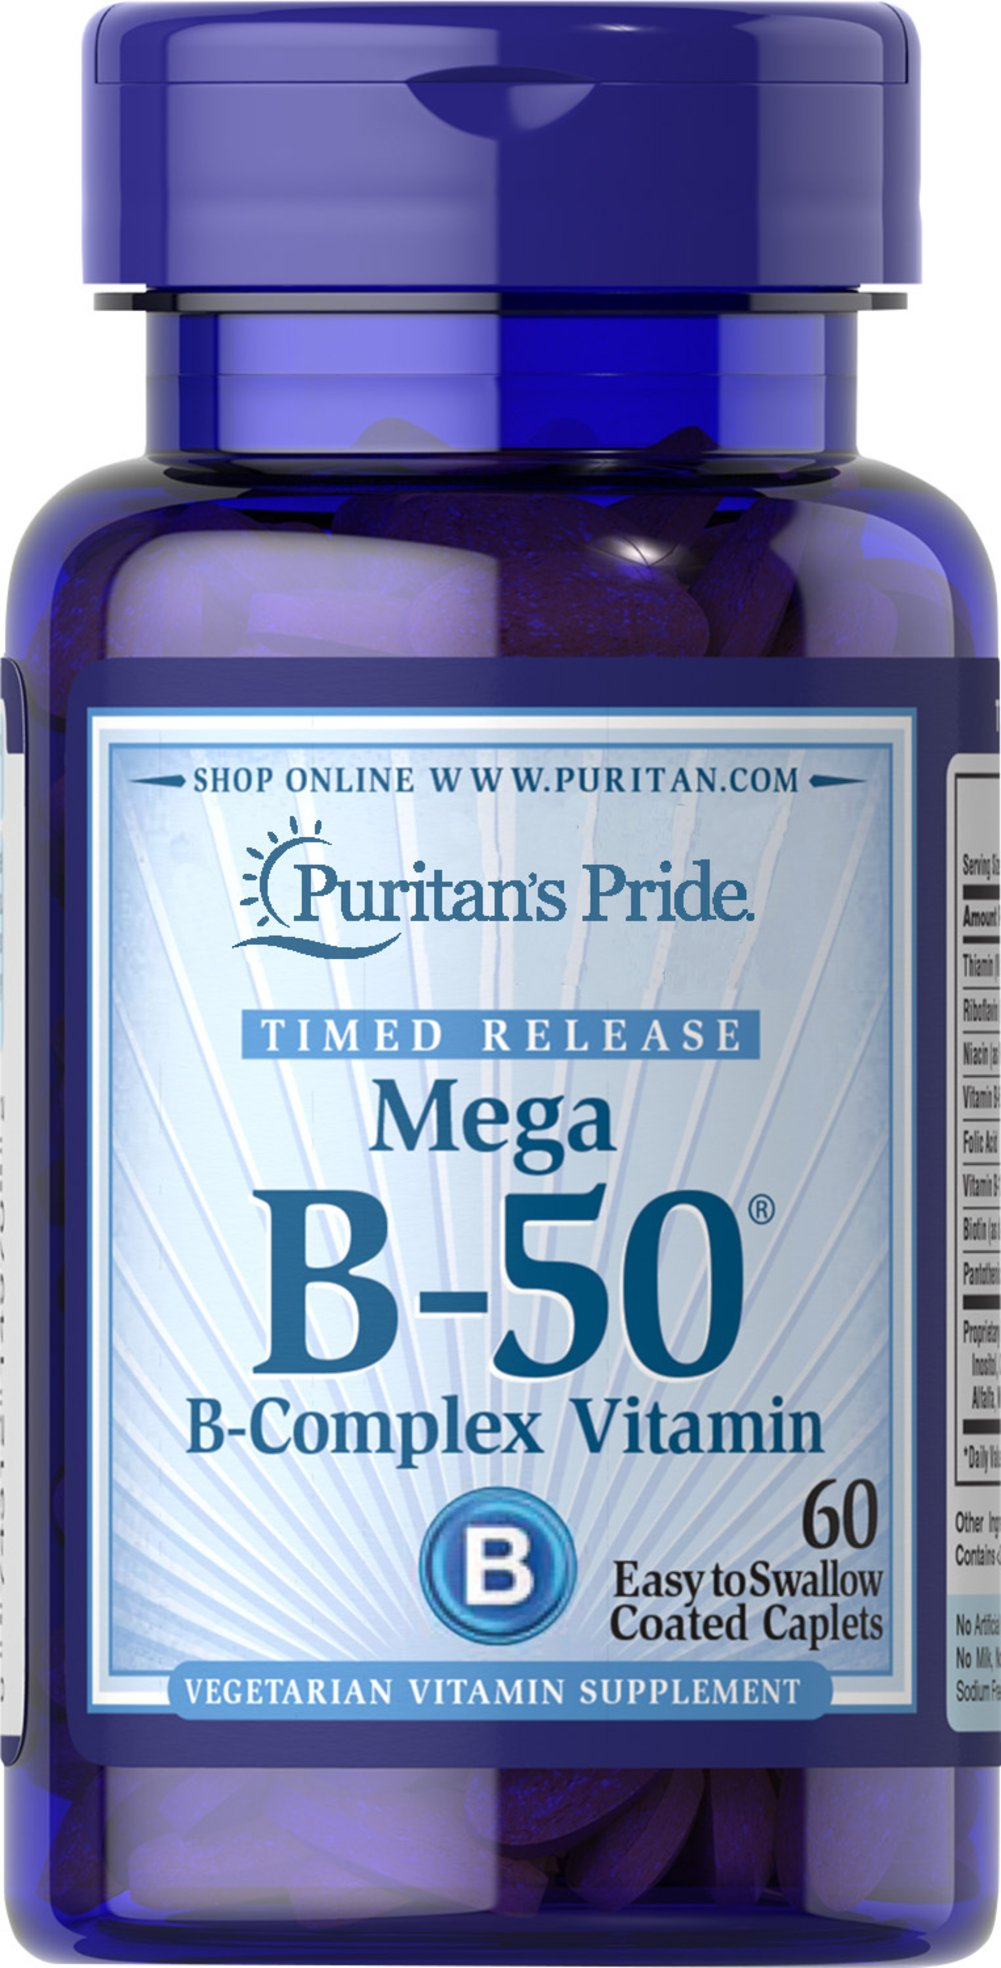 Vitamin B-50® Complex Timed Release <p>When taken together in a Vitamin B-50® complex formula, the B-Vitamins help to maintain the health of the nerves, skin, eyes and hair.** Each tablet is time released to provide a steady flow of B-Complex to your body.</p><p>Each serving delivers Thiamin, Riboflavin, Niacin, B-6, B-12, Biotin, Folic Acid, Pantothenic Acid and a Proprietary Blend.</p> 60 Tablets 50 mg $12.99